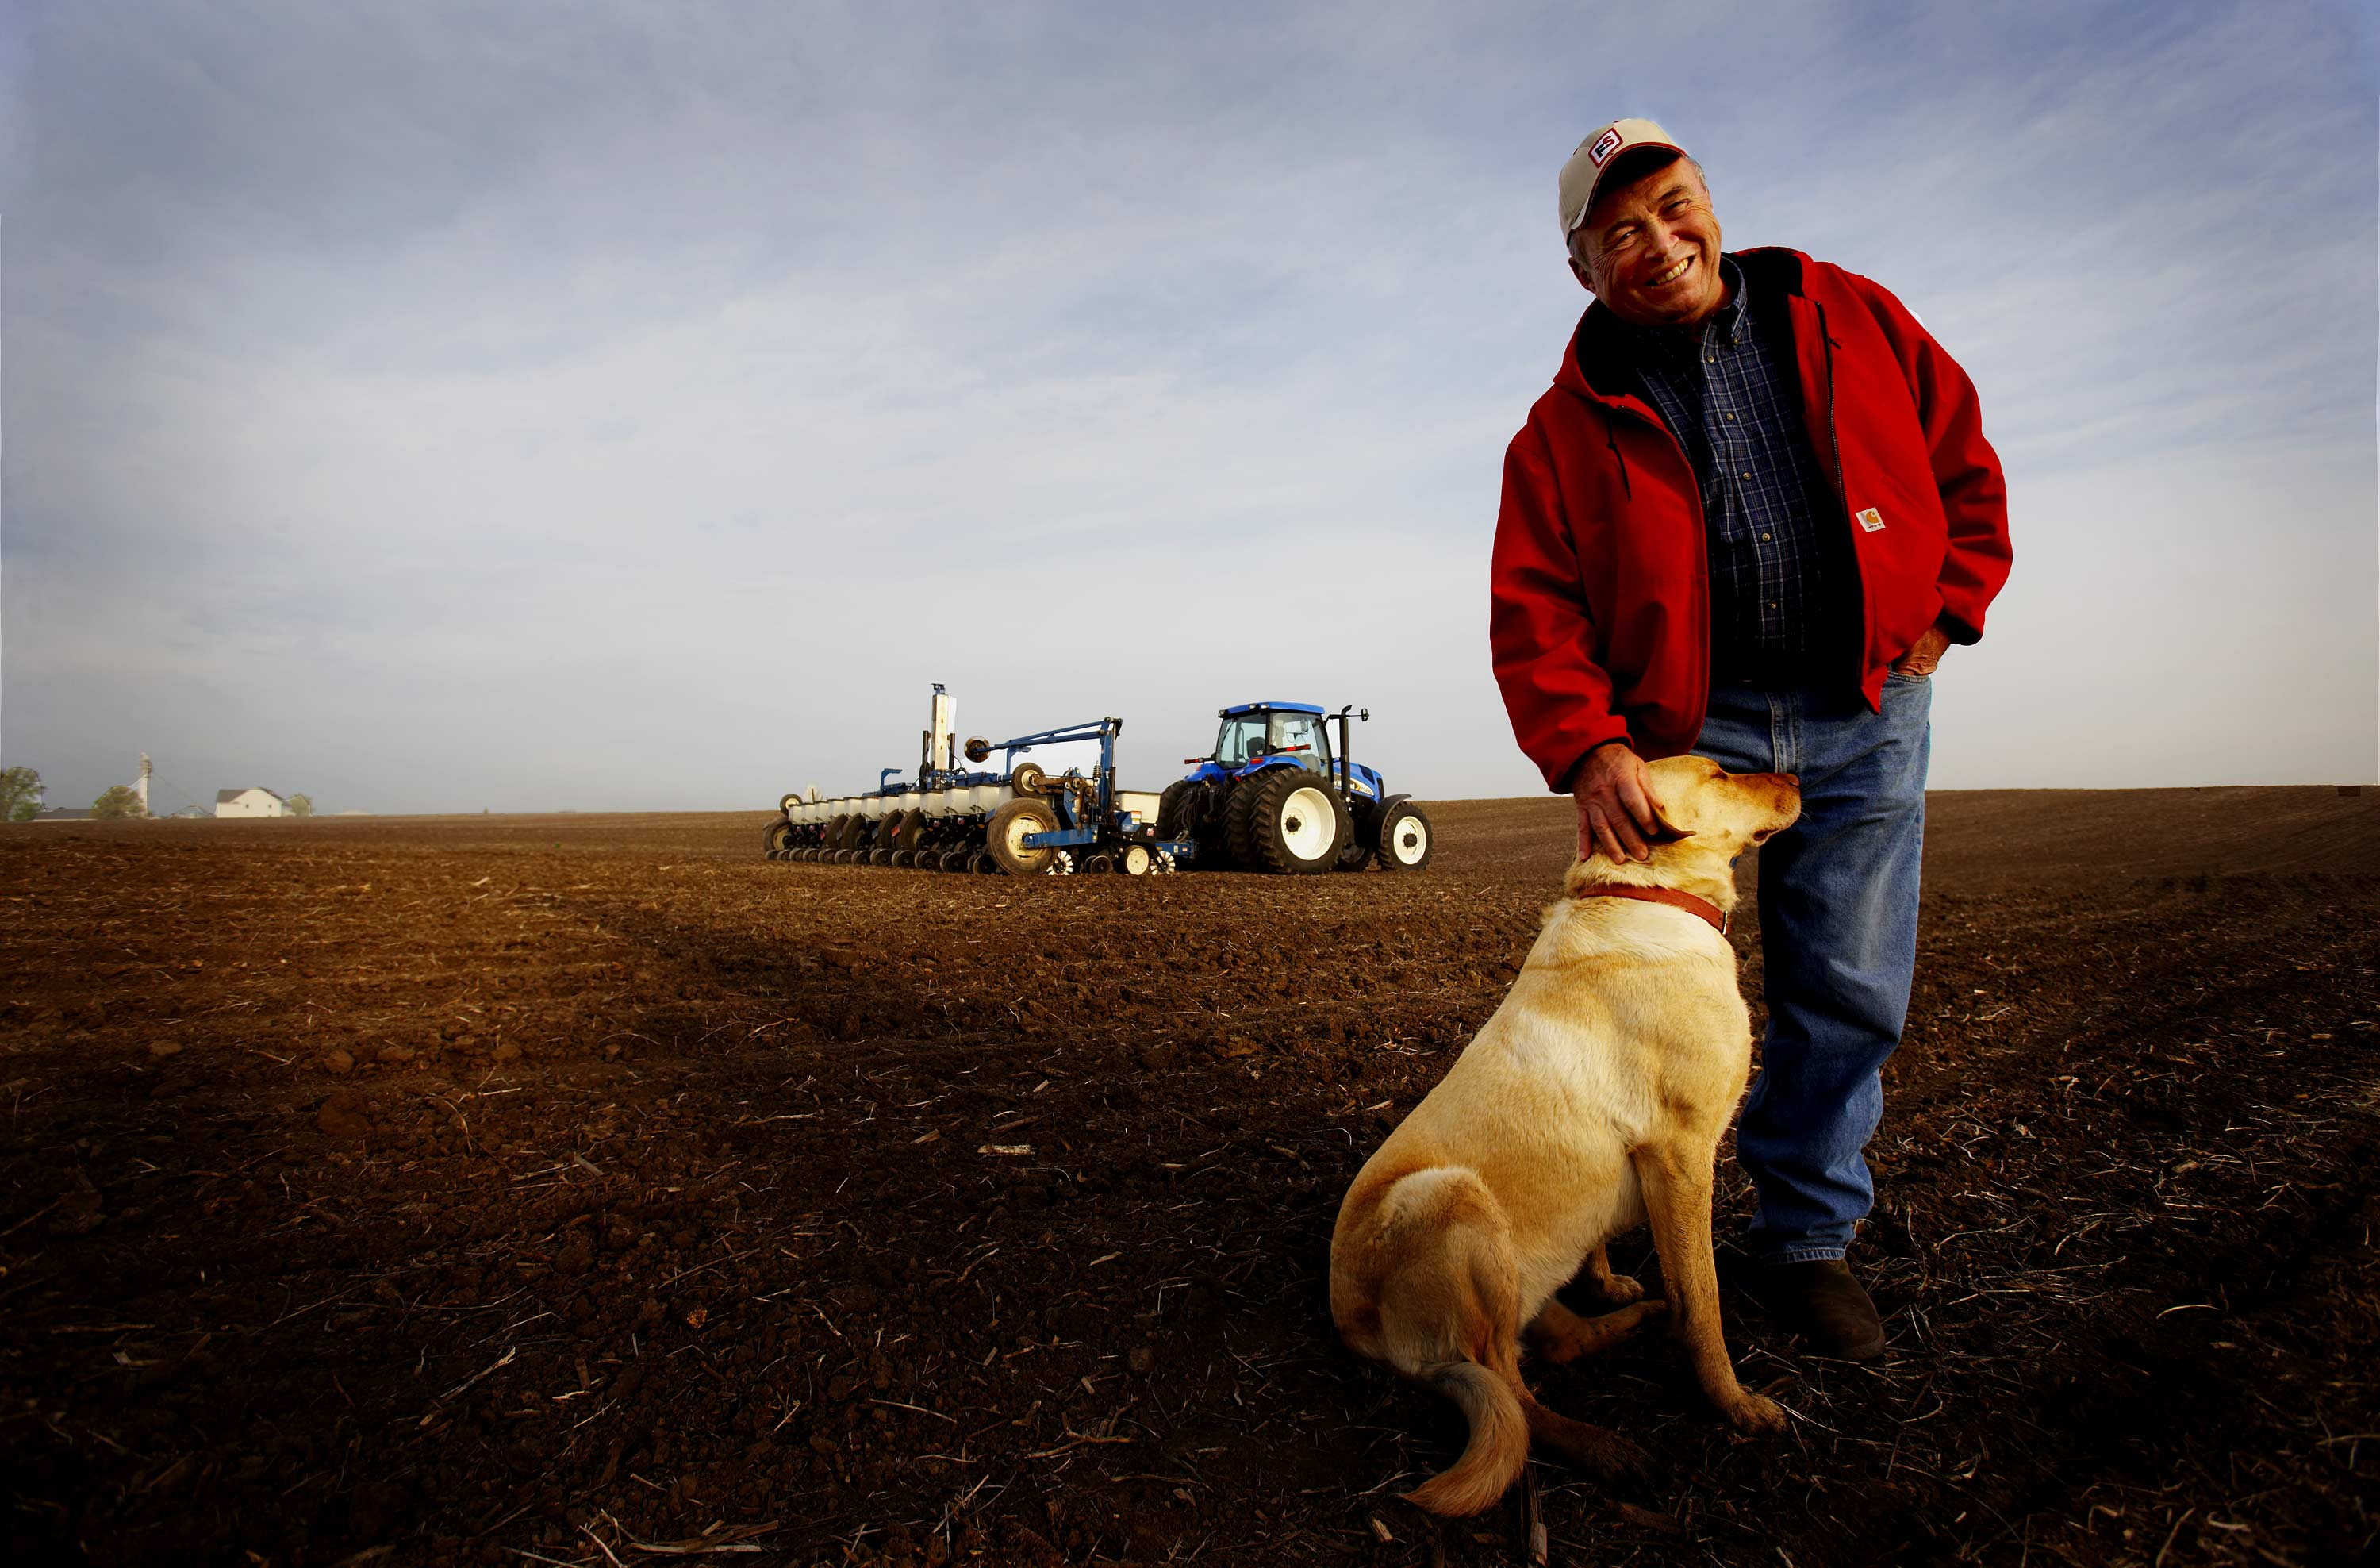 John Nienhuis | Agriculture & Farm Life Photographer | Wisconsin & Midwest Photography